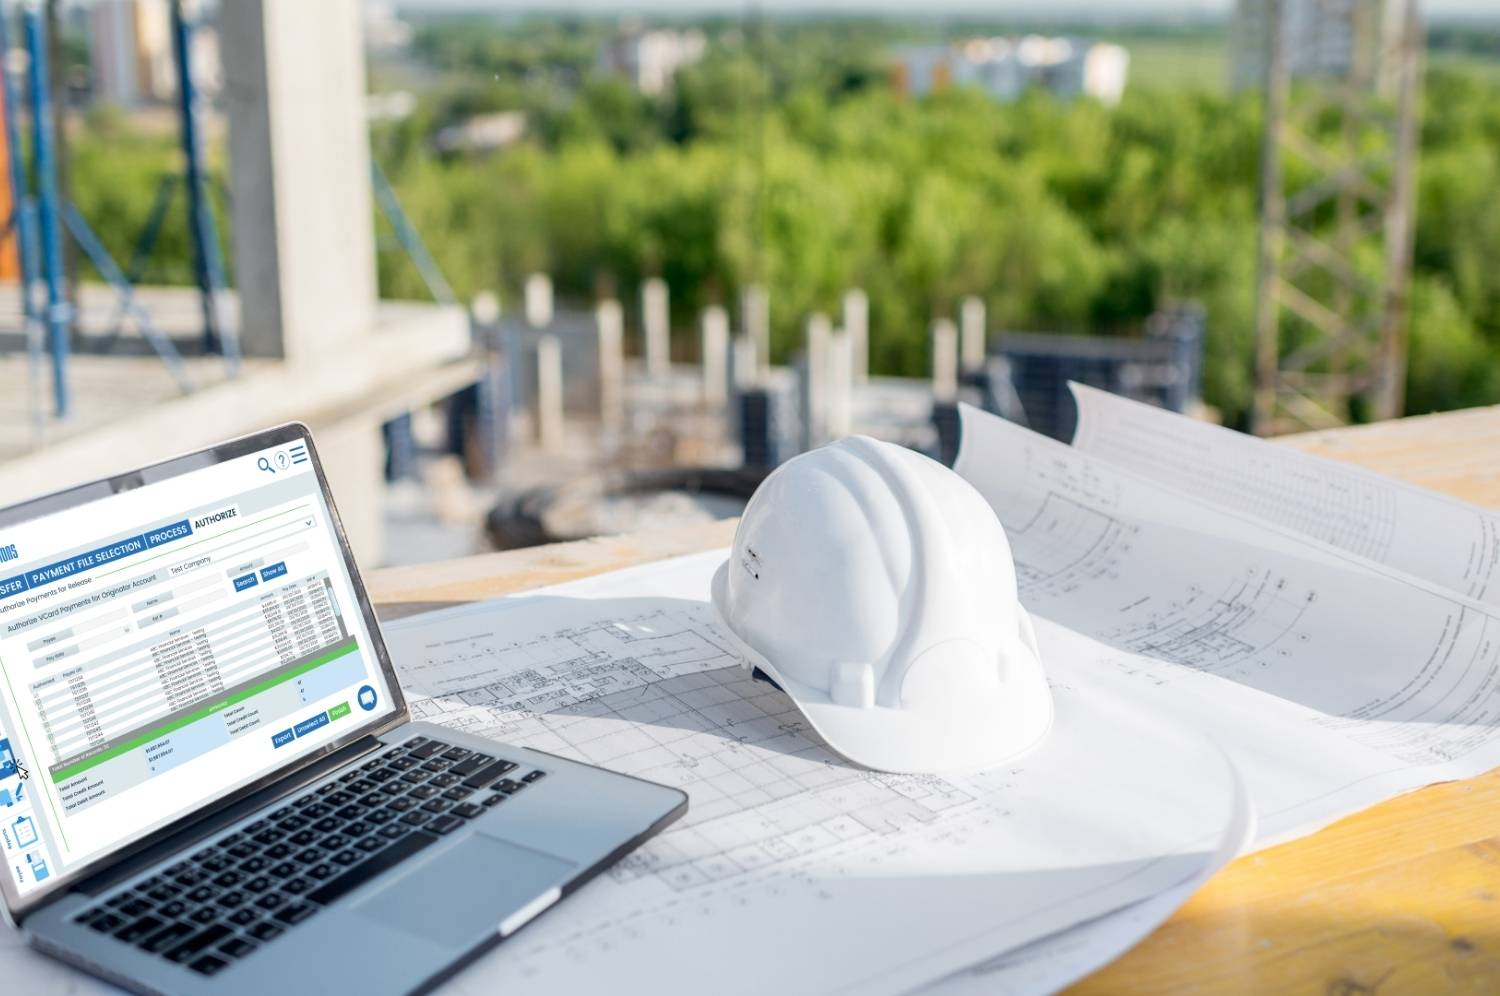 laptop at construction job site with virtual cards pulled up for remote approval